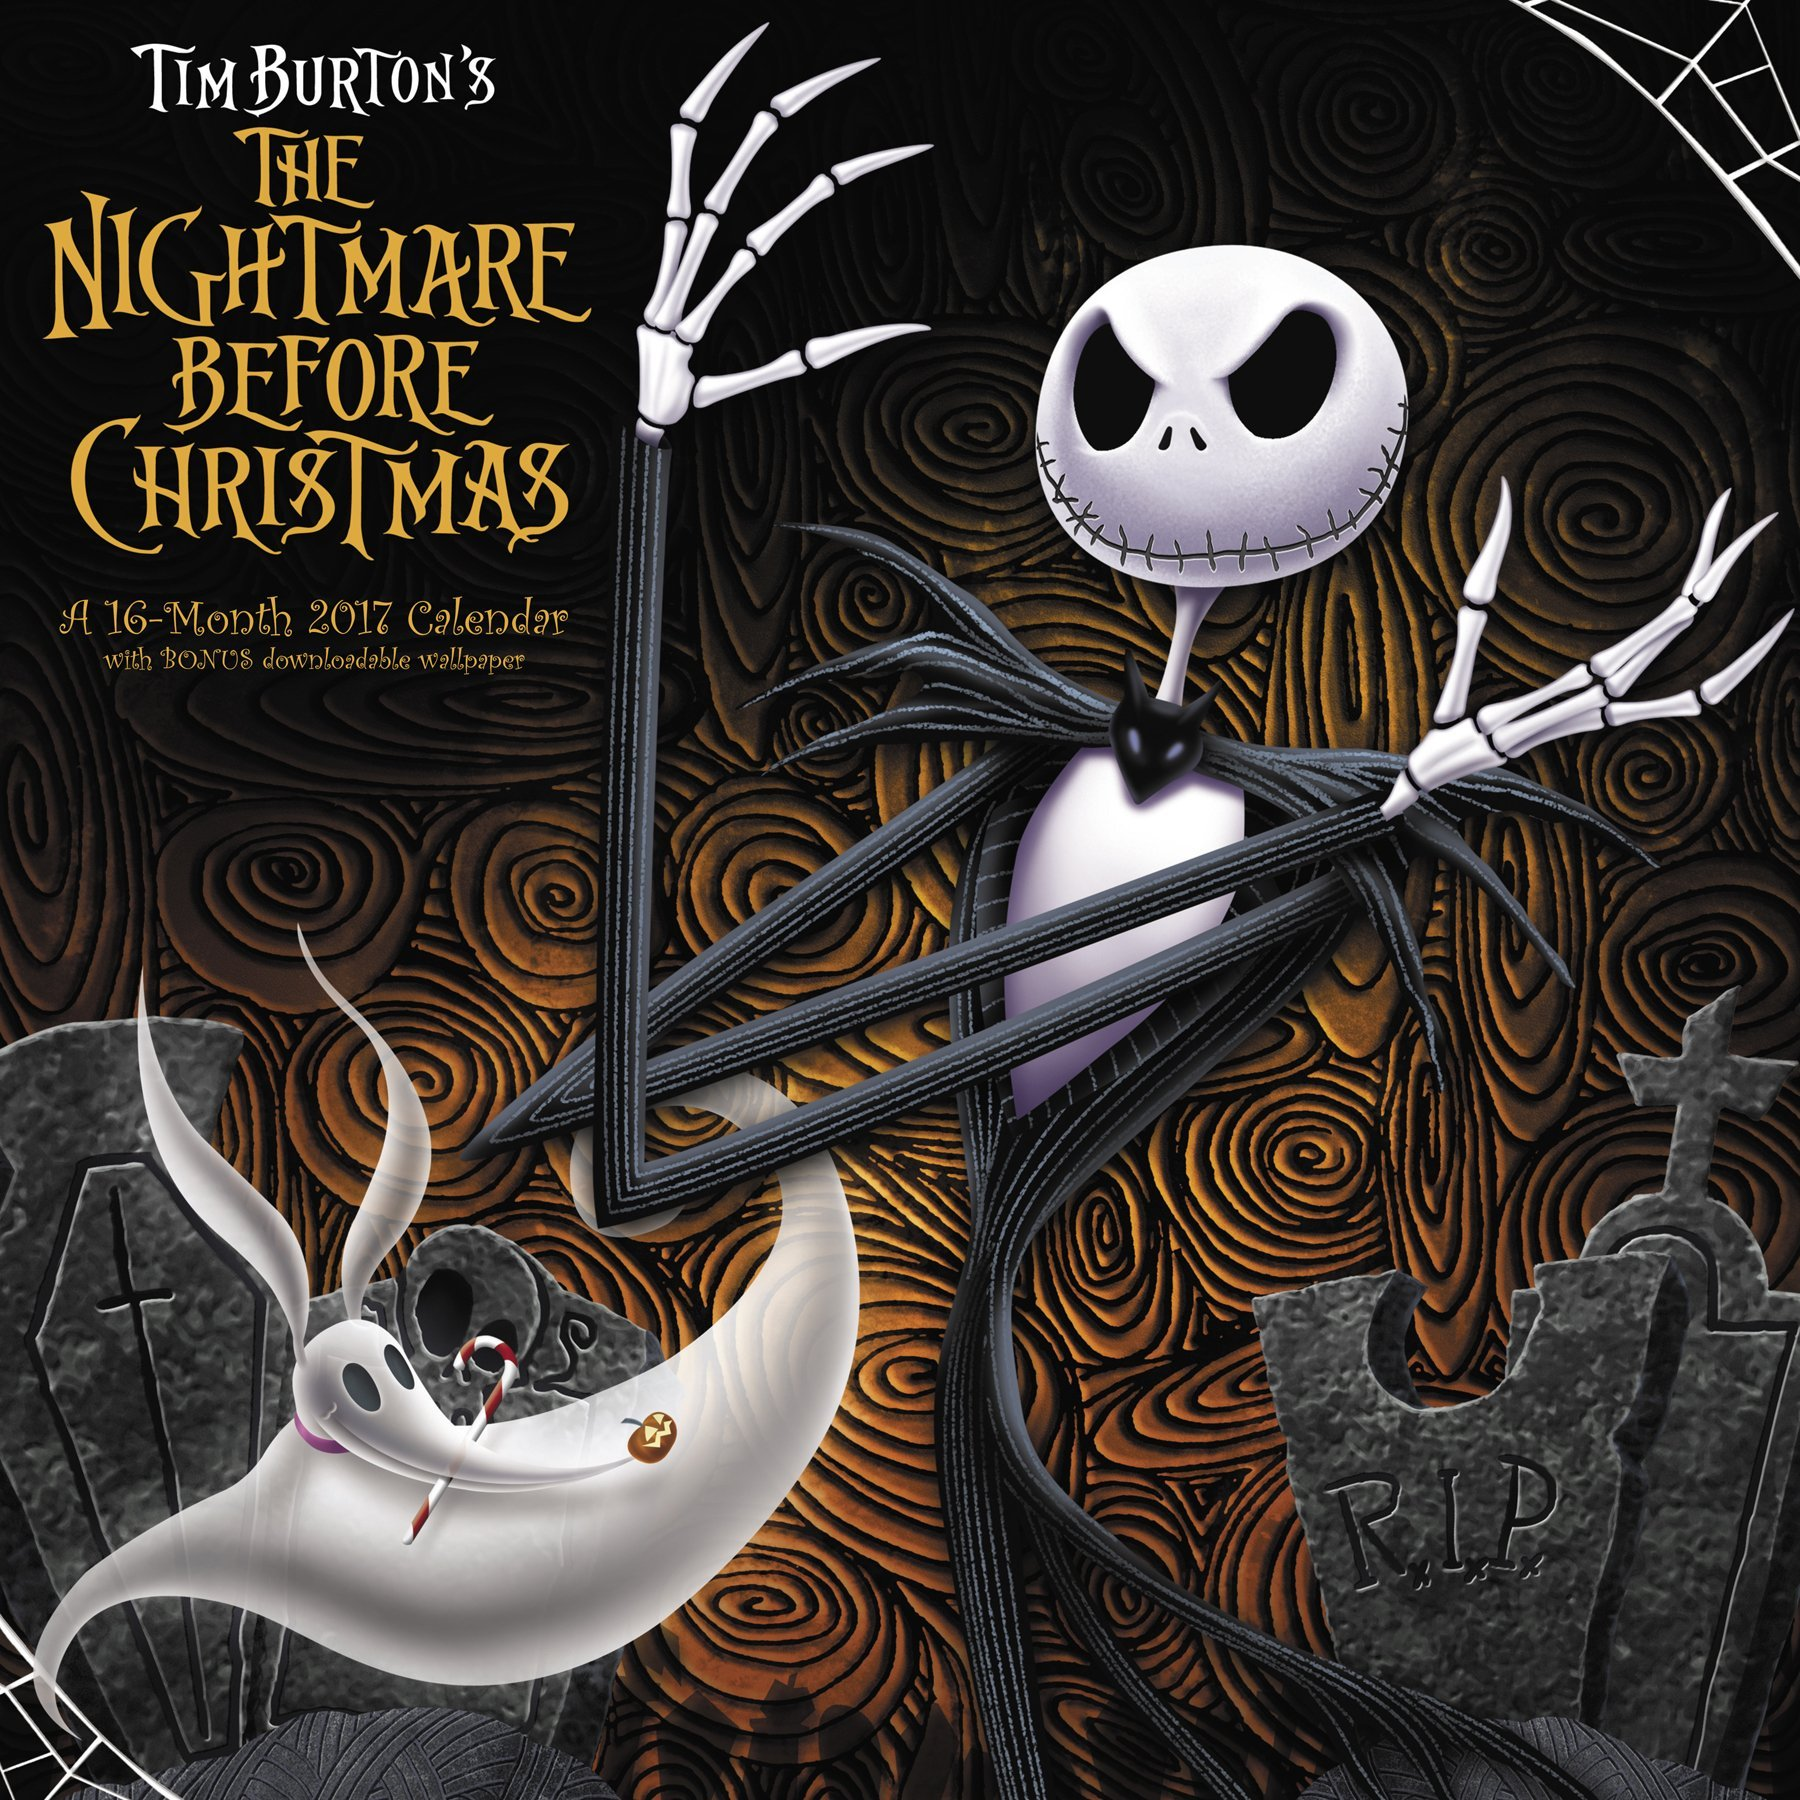 the nightmare before christmas wall calendar 2017 day dream 0038576192874 amazoncom books - A Nightmare Before Christmas